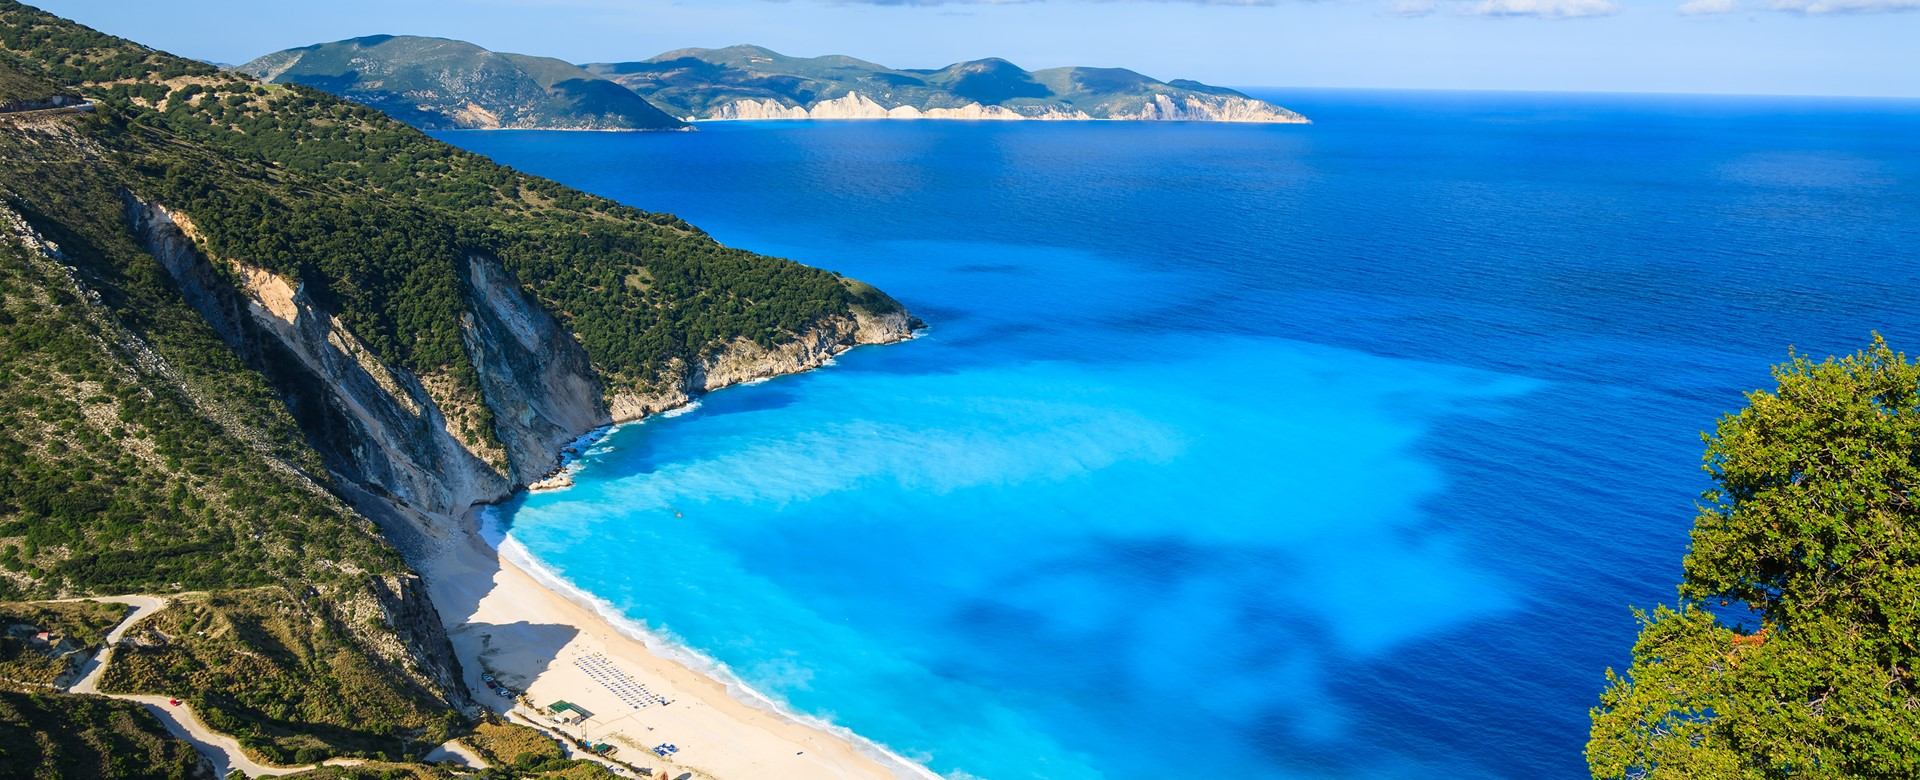 View of beautiful Myrtos bay and beach on Kefalonia island, Greek Islands